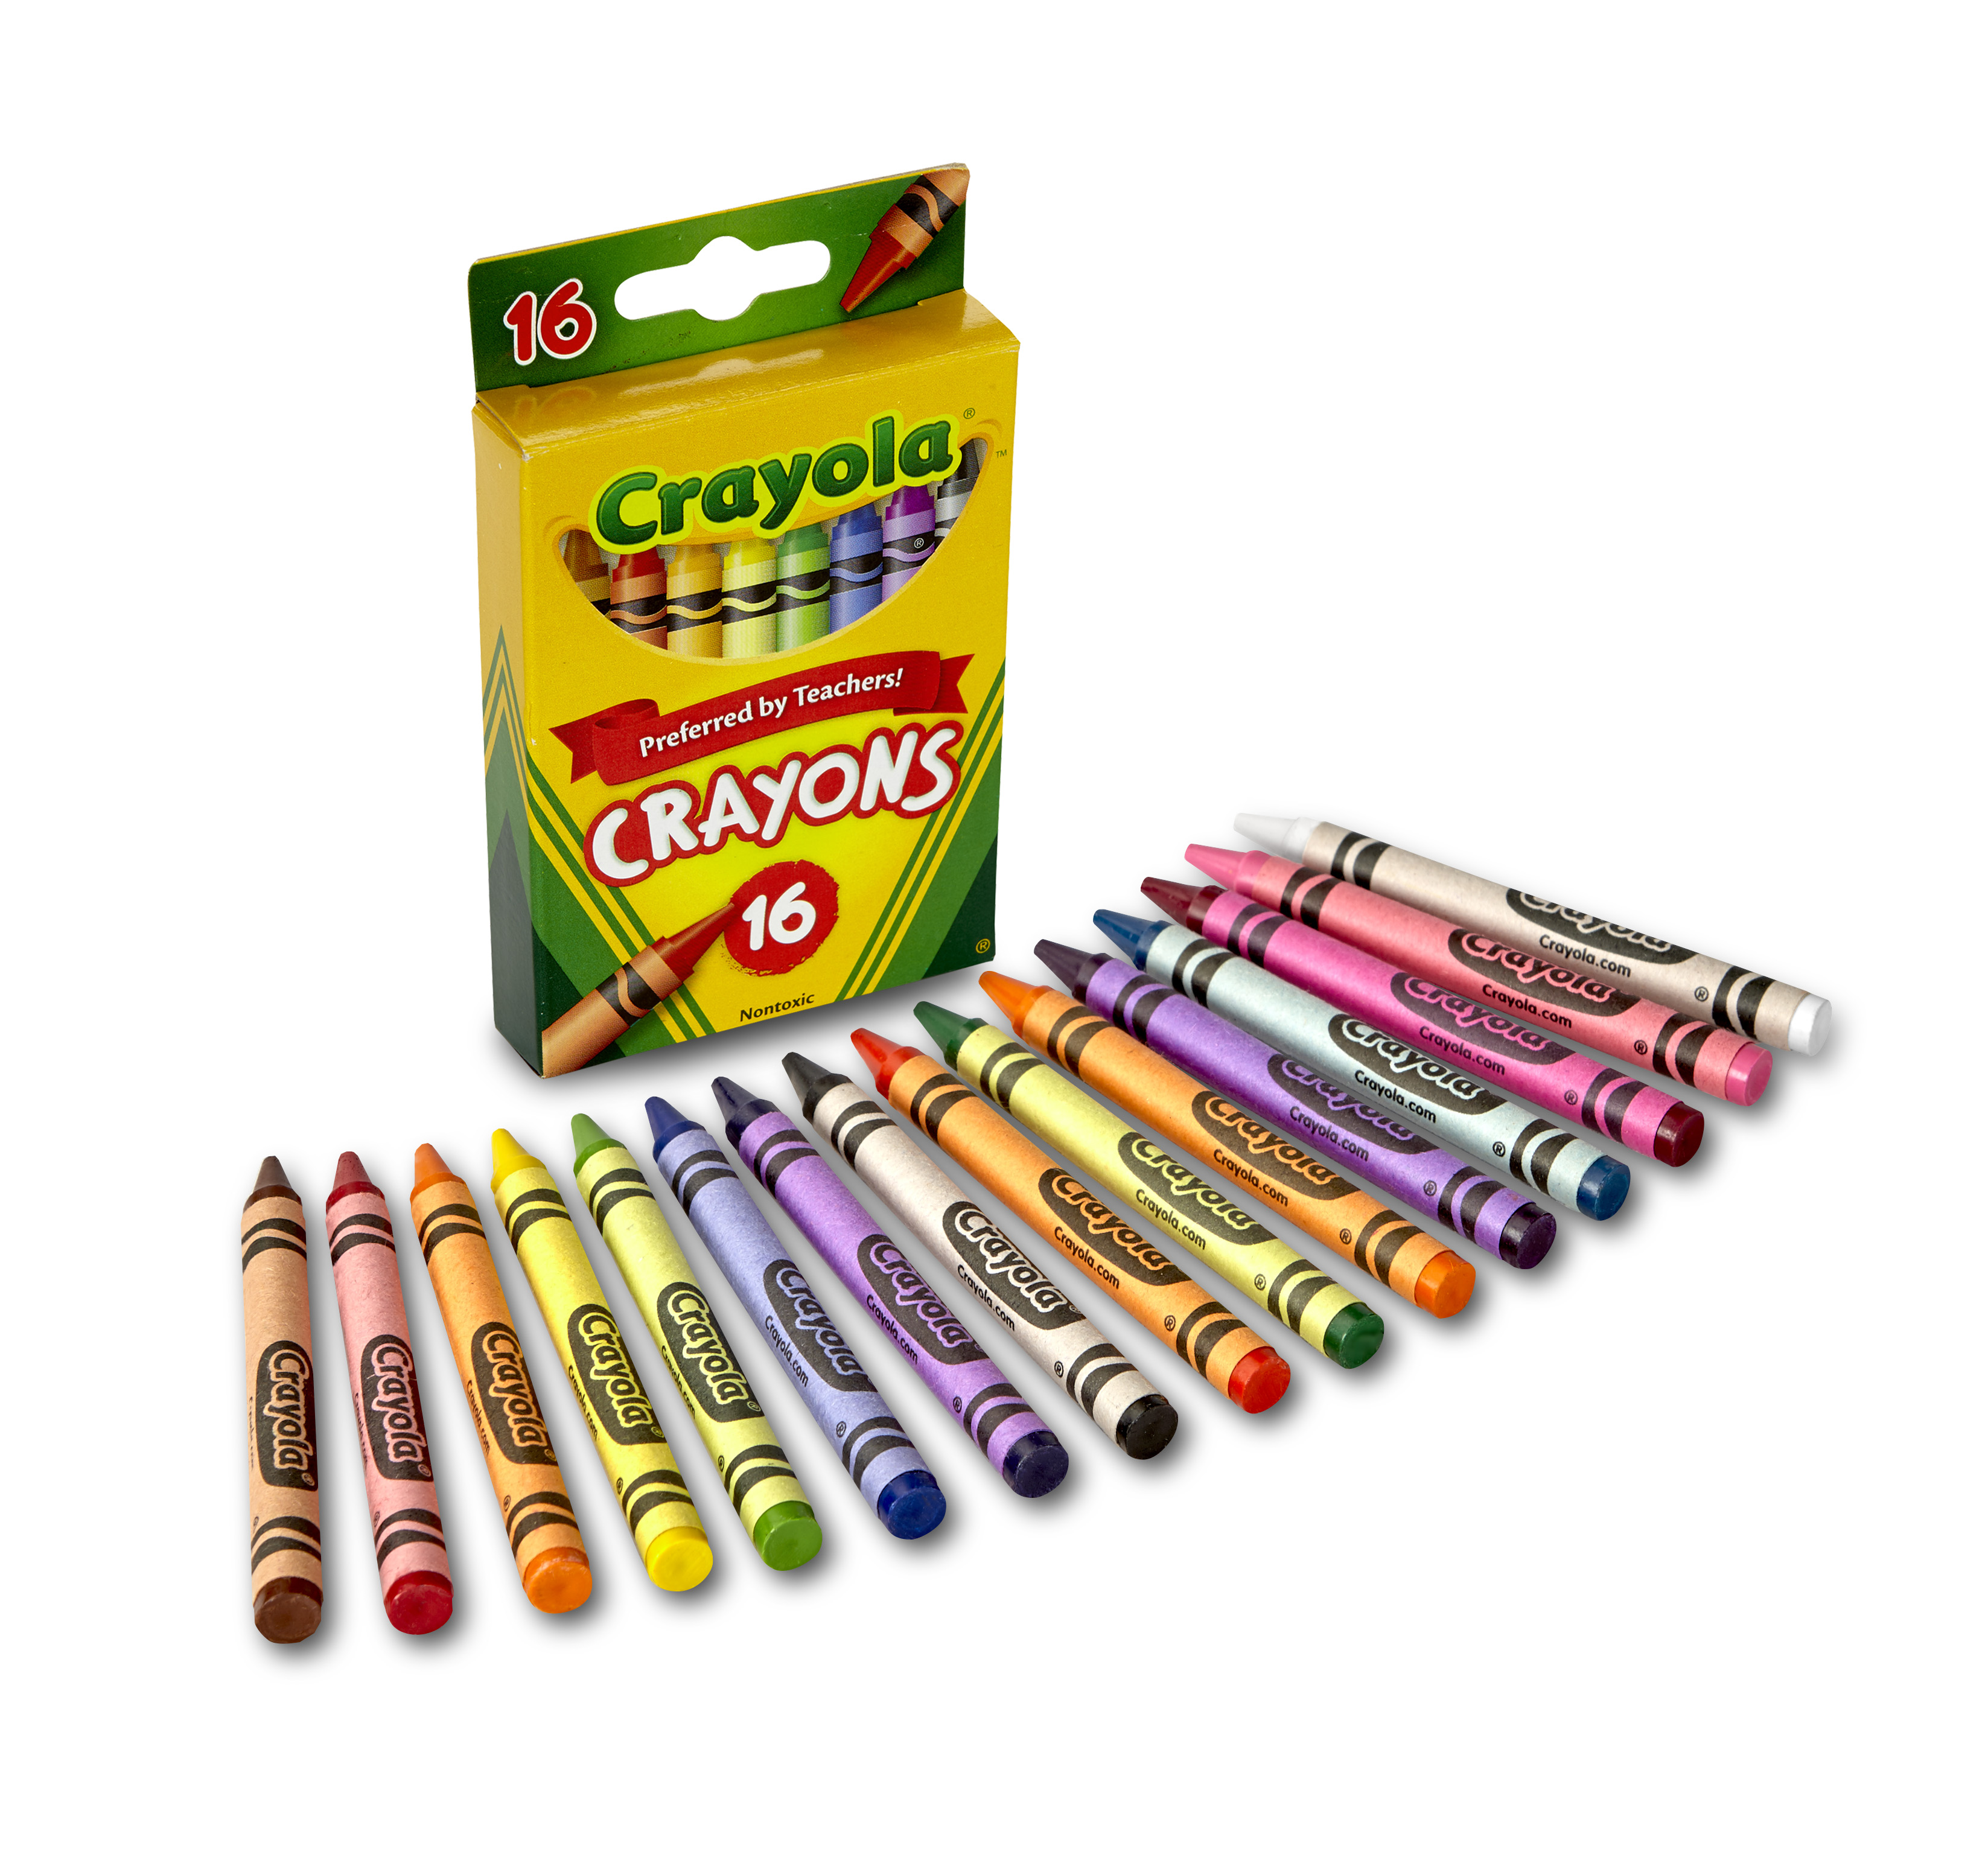 (5 Pack) Crayola classic crayons 16 count perfect for back-to-school